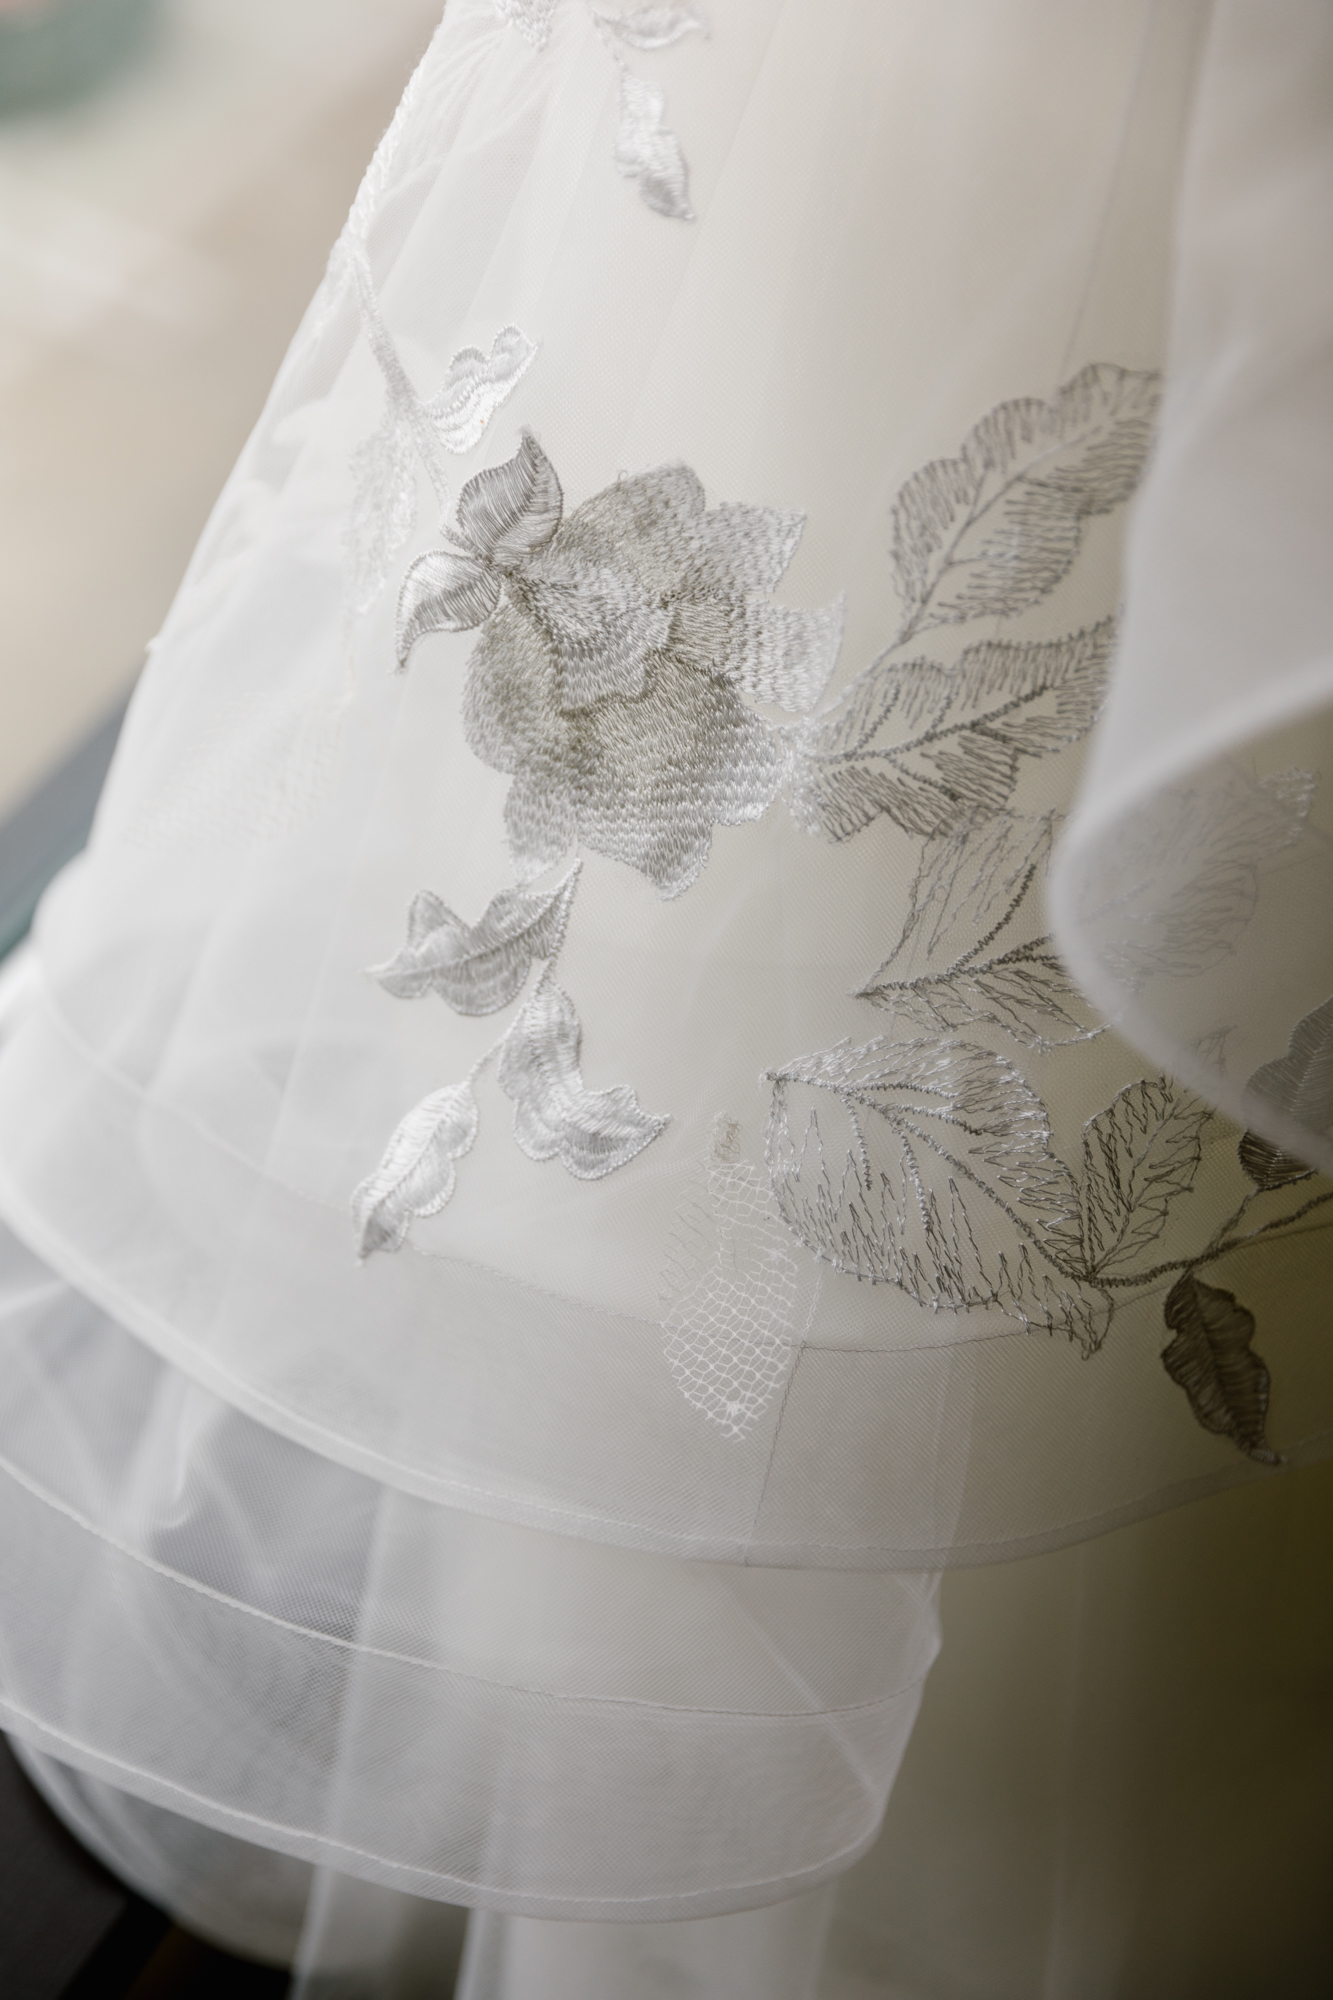 Dress photography from a wedding at Indiana University in Bloomington, Indiana.